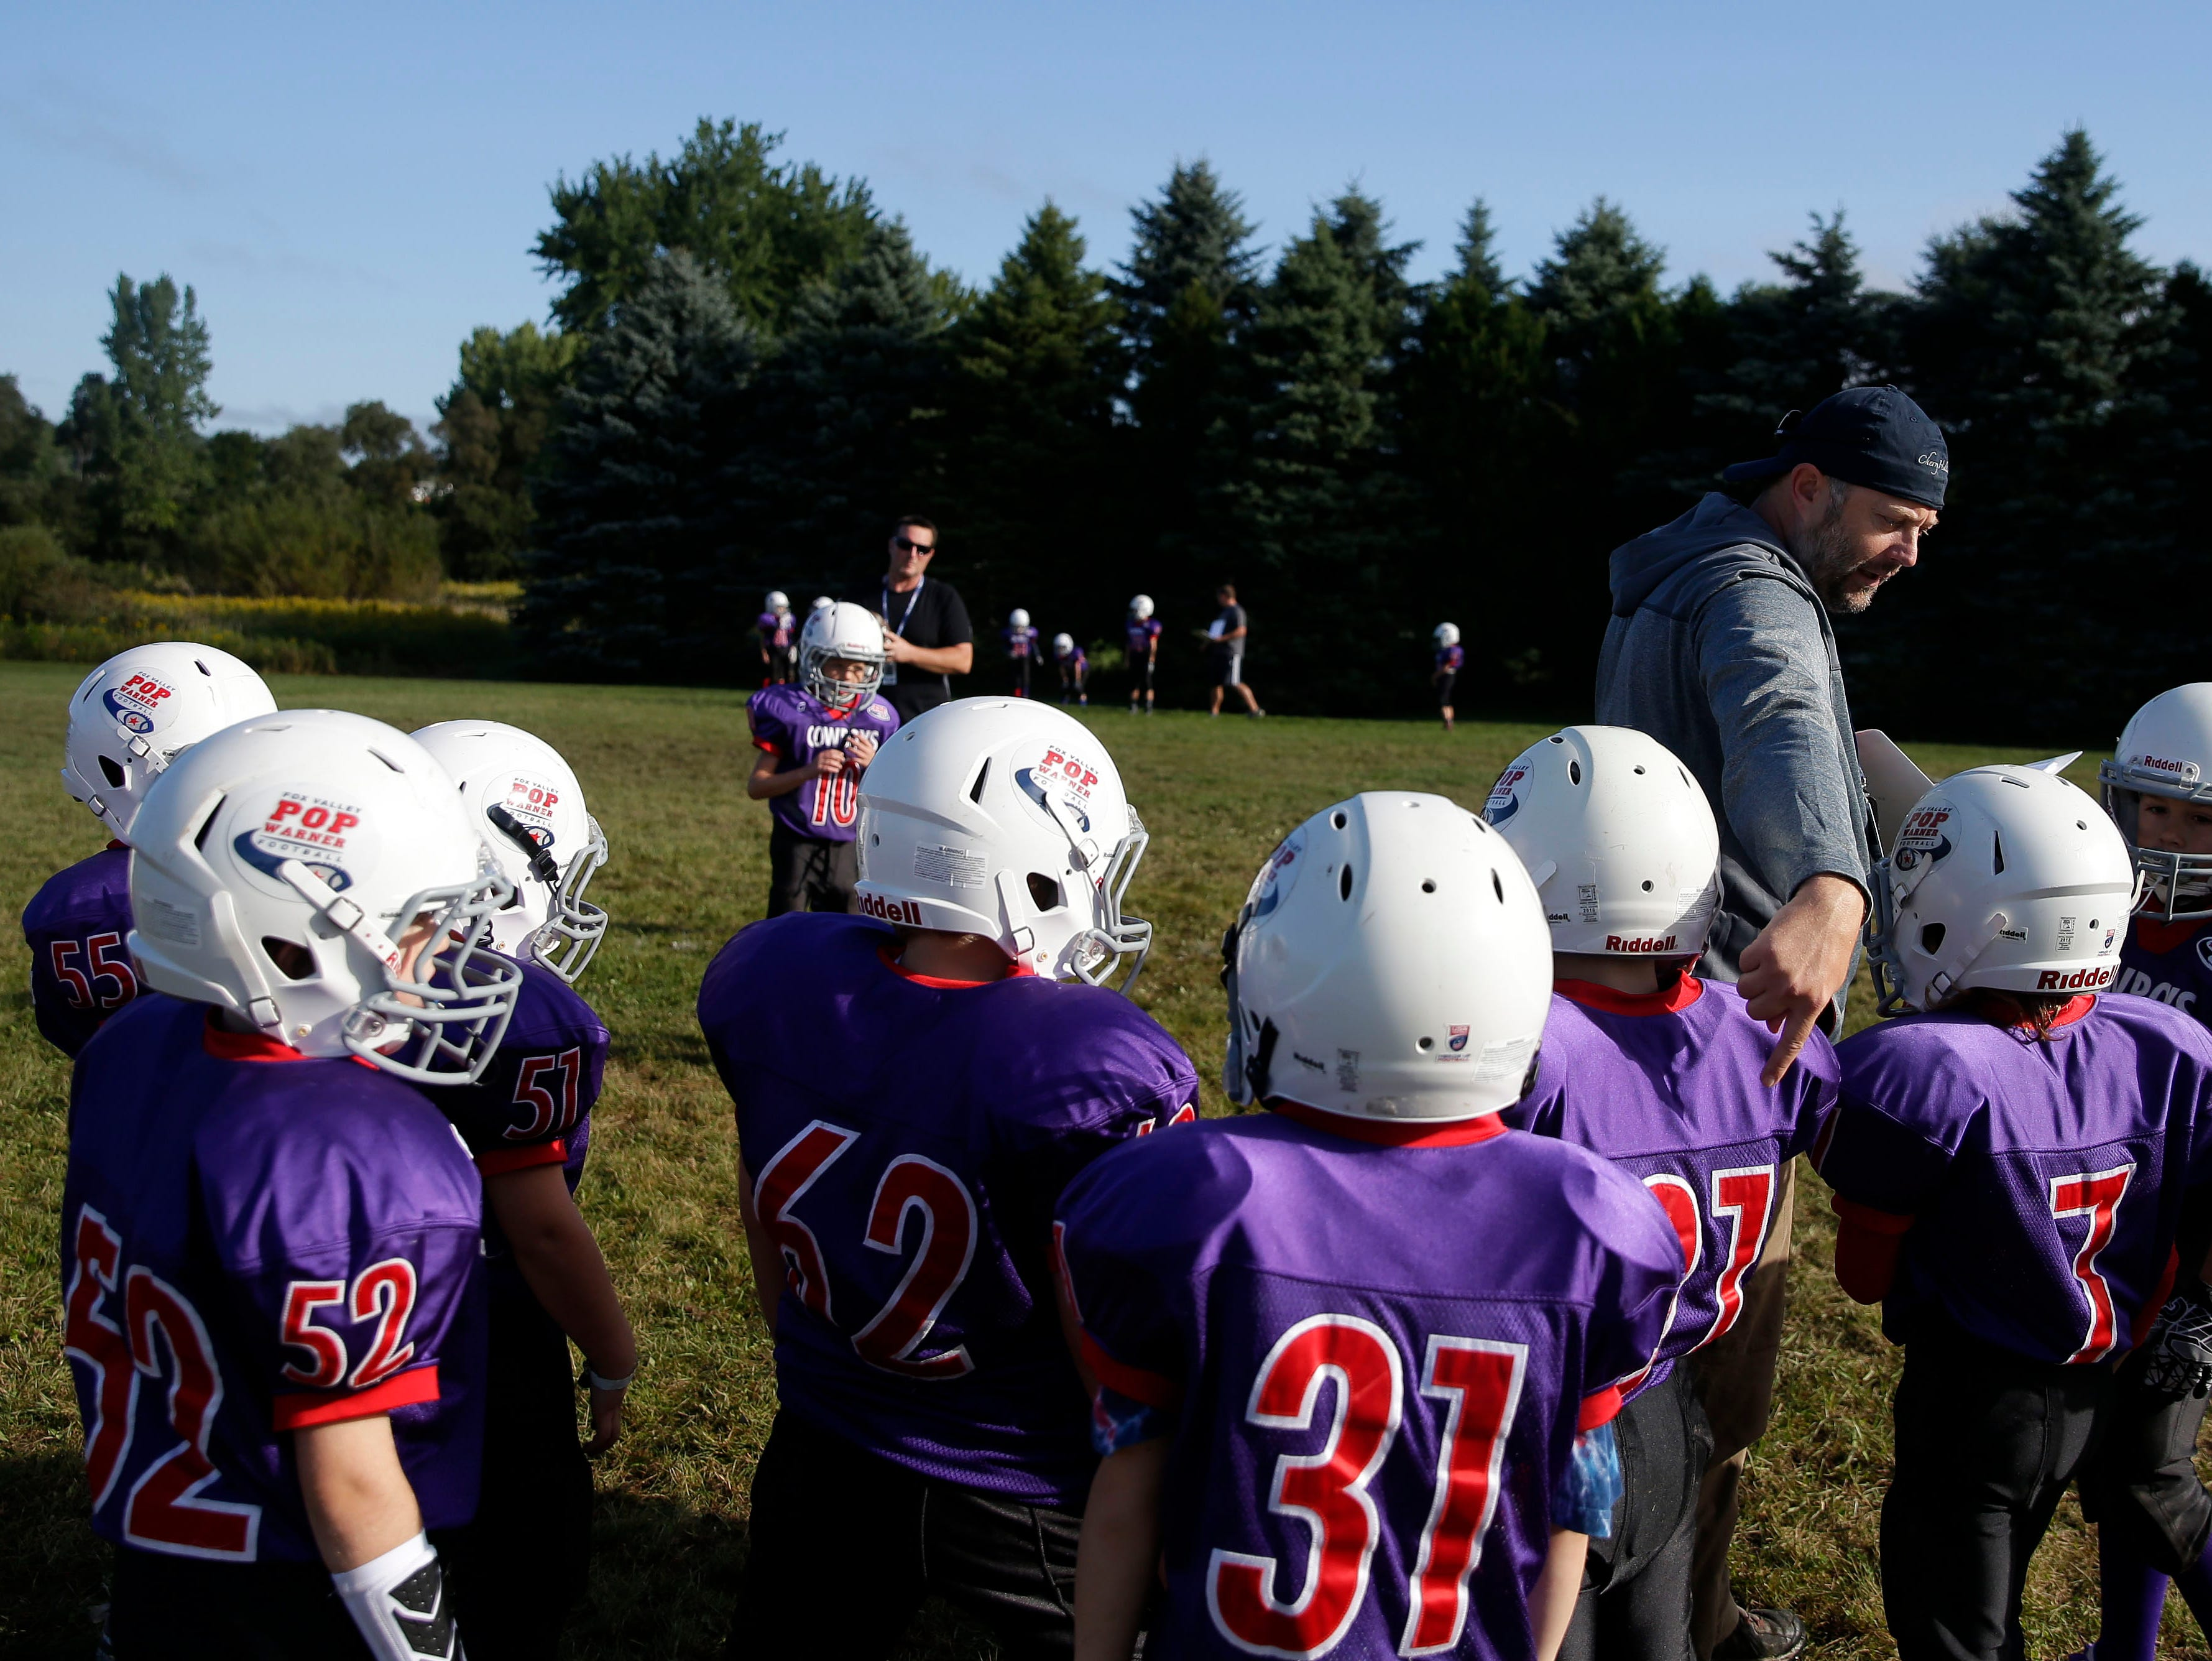 Coach Adam Landsverk of the Cowboys instructs players where to go in a huddle as Fox Valley Pop Warner Football opens the season Saturday, September 8, 2018, at Plamann Park in Grand Chute, Wis.Ron Page/USA TODAY NETWORK-Wisconsin